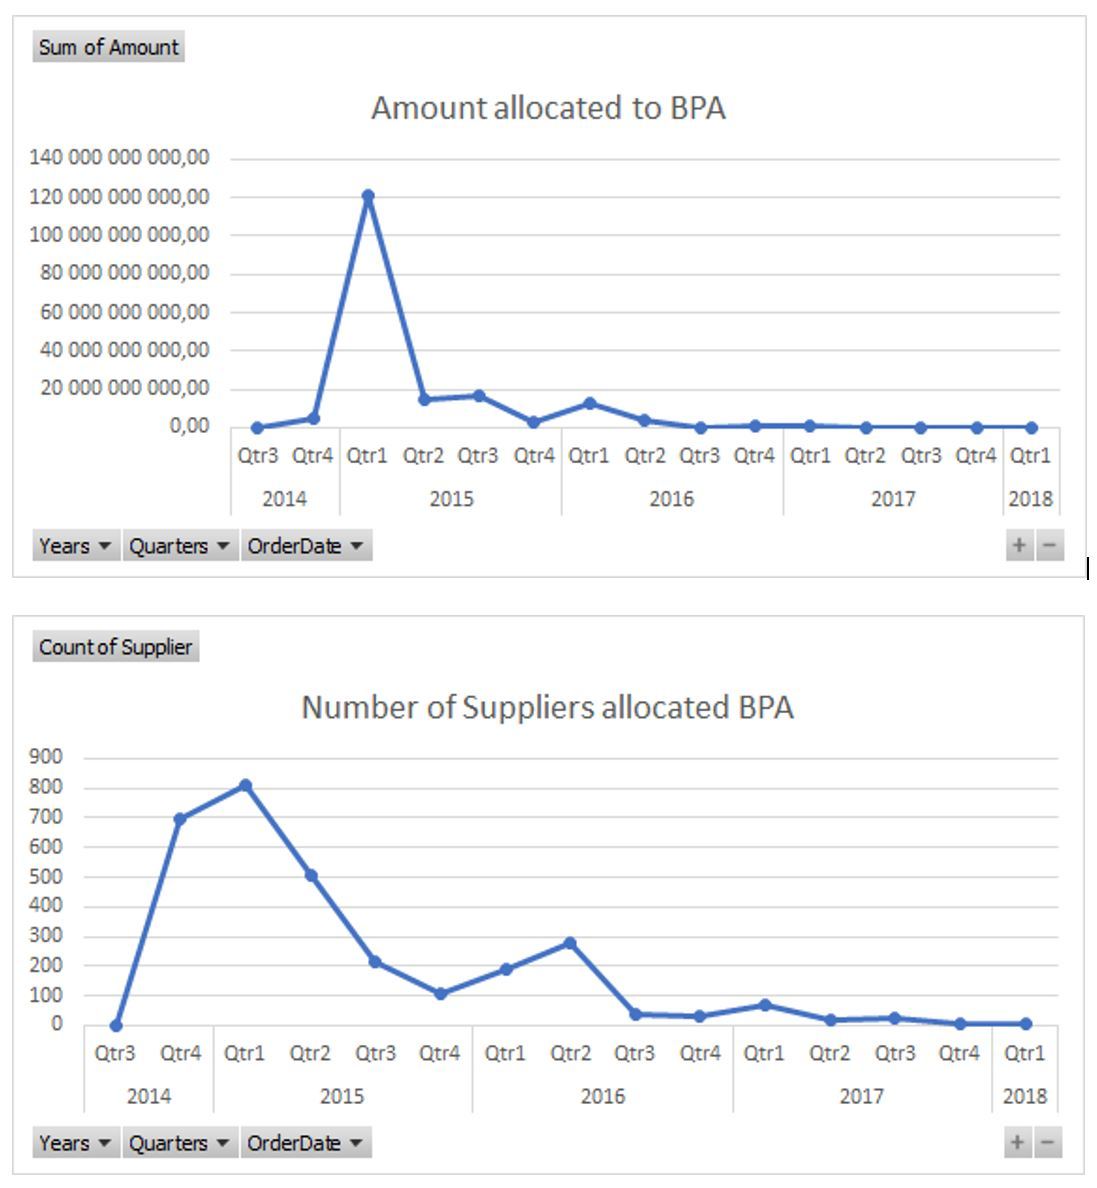 Number of Suppliers Allocated BPA